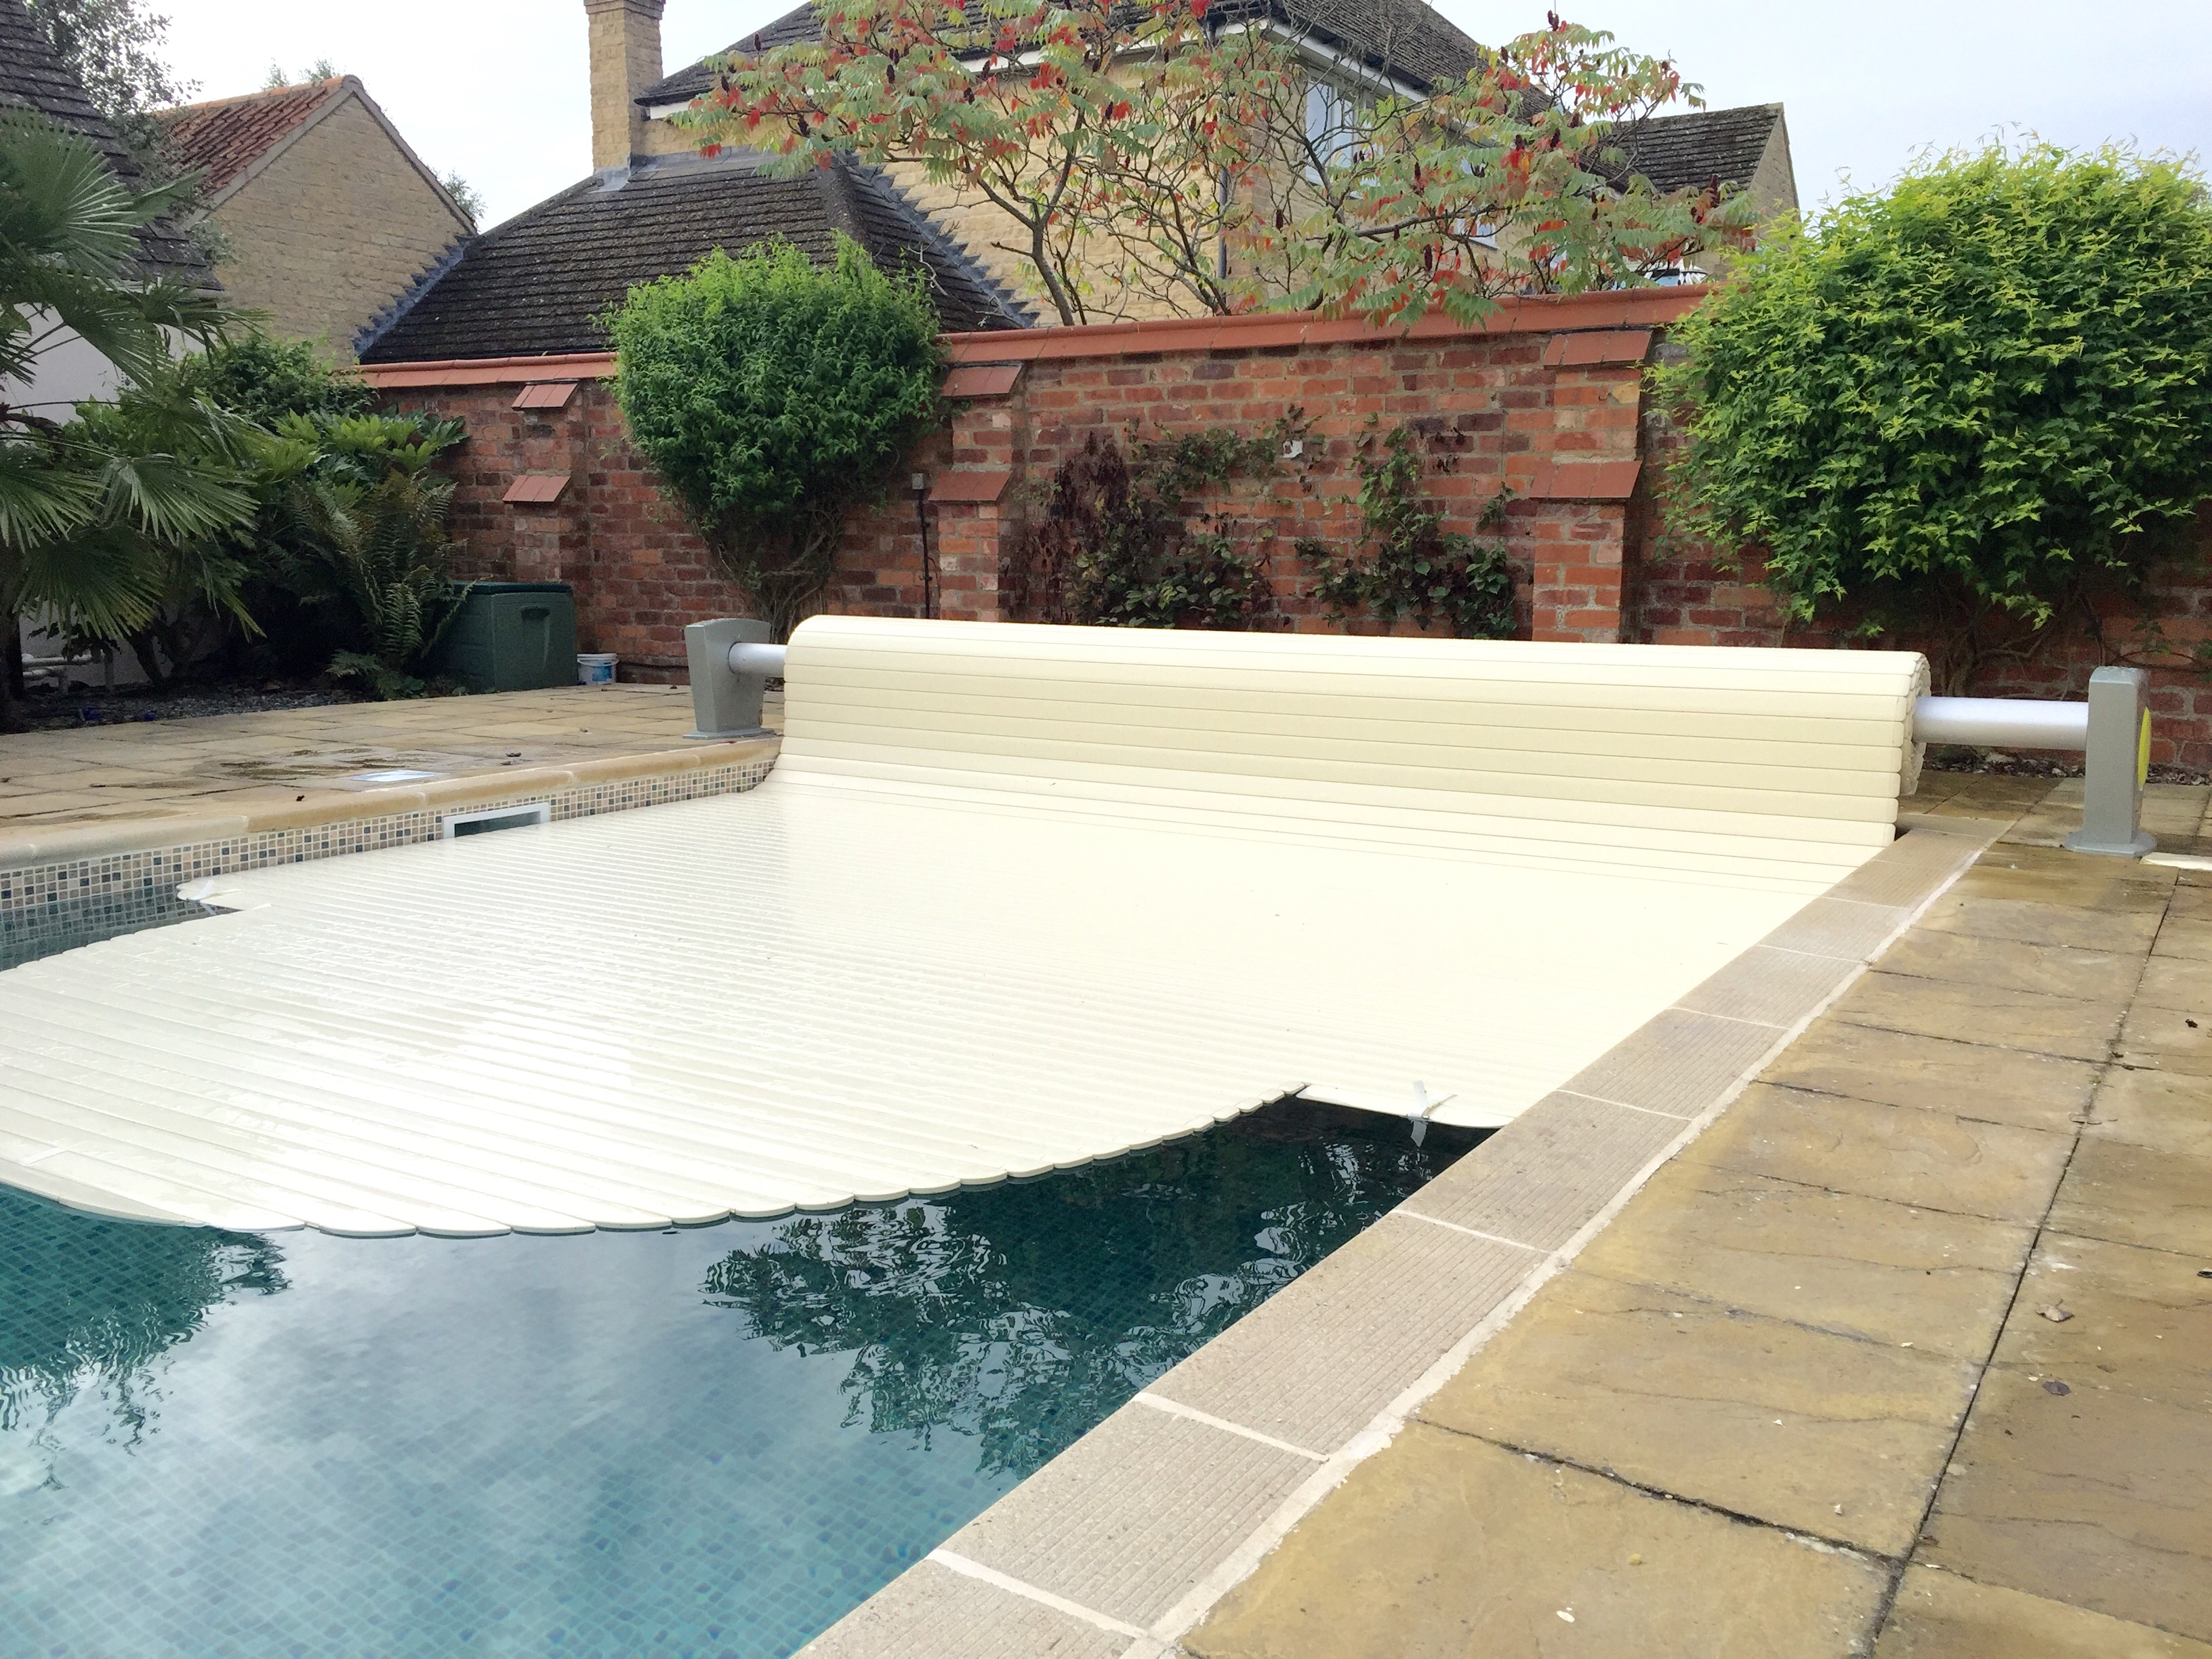 Moon slatted pool cover